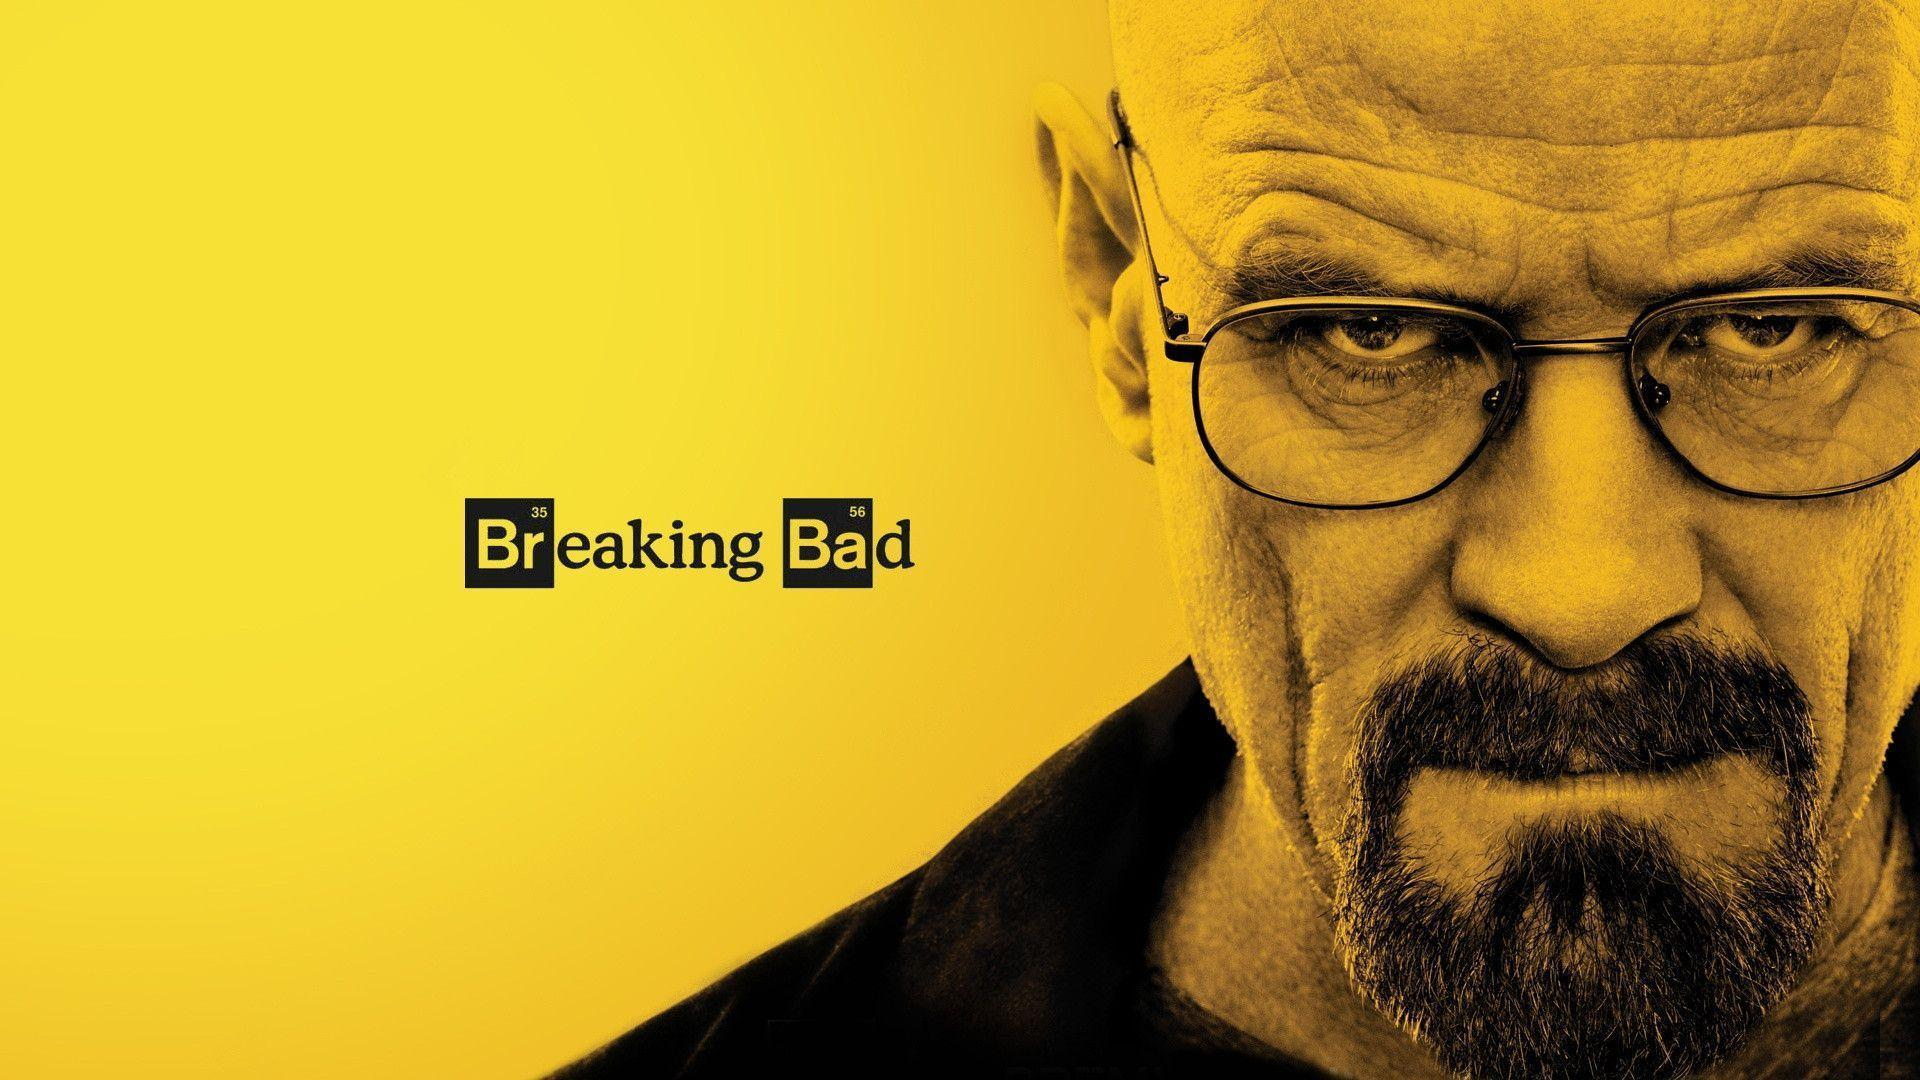 breaking bad season 1 episode 1 torrent hd